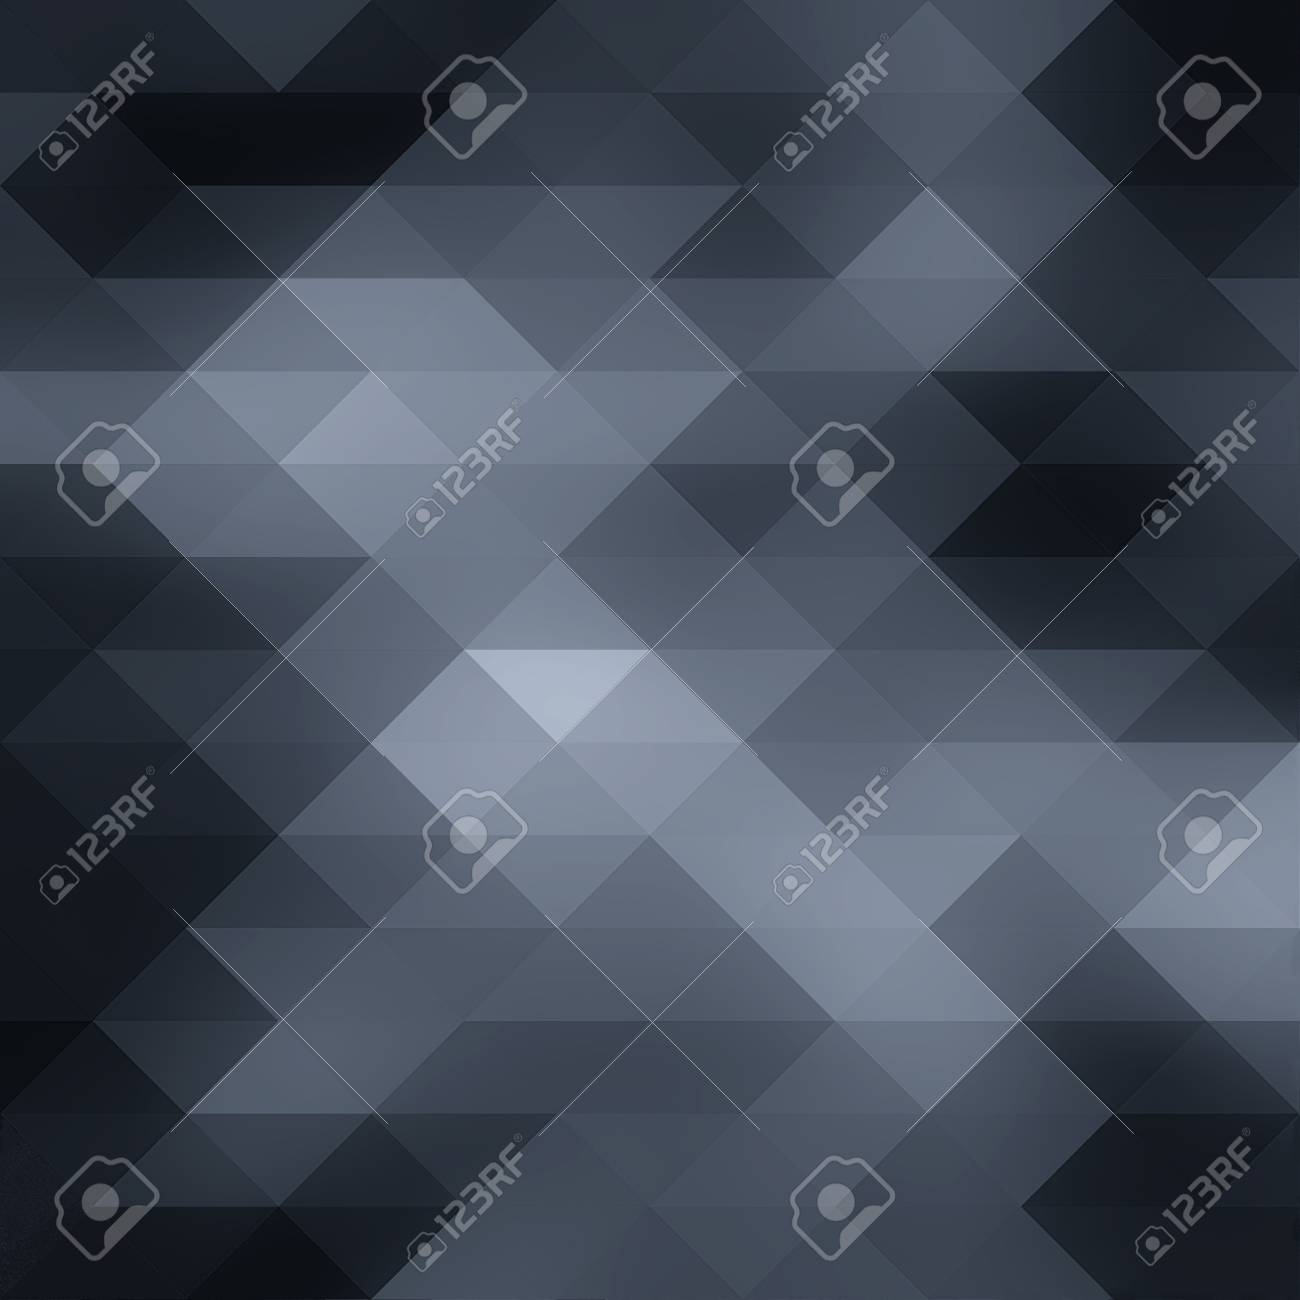 Black White And Blue Gray Low Poly Triangle Pattern Background Stock Photo Picture And Royalty Free Image Image 88283037